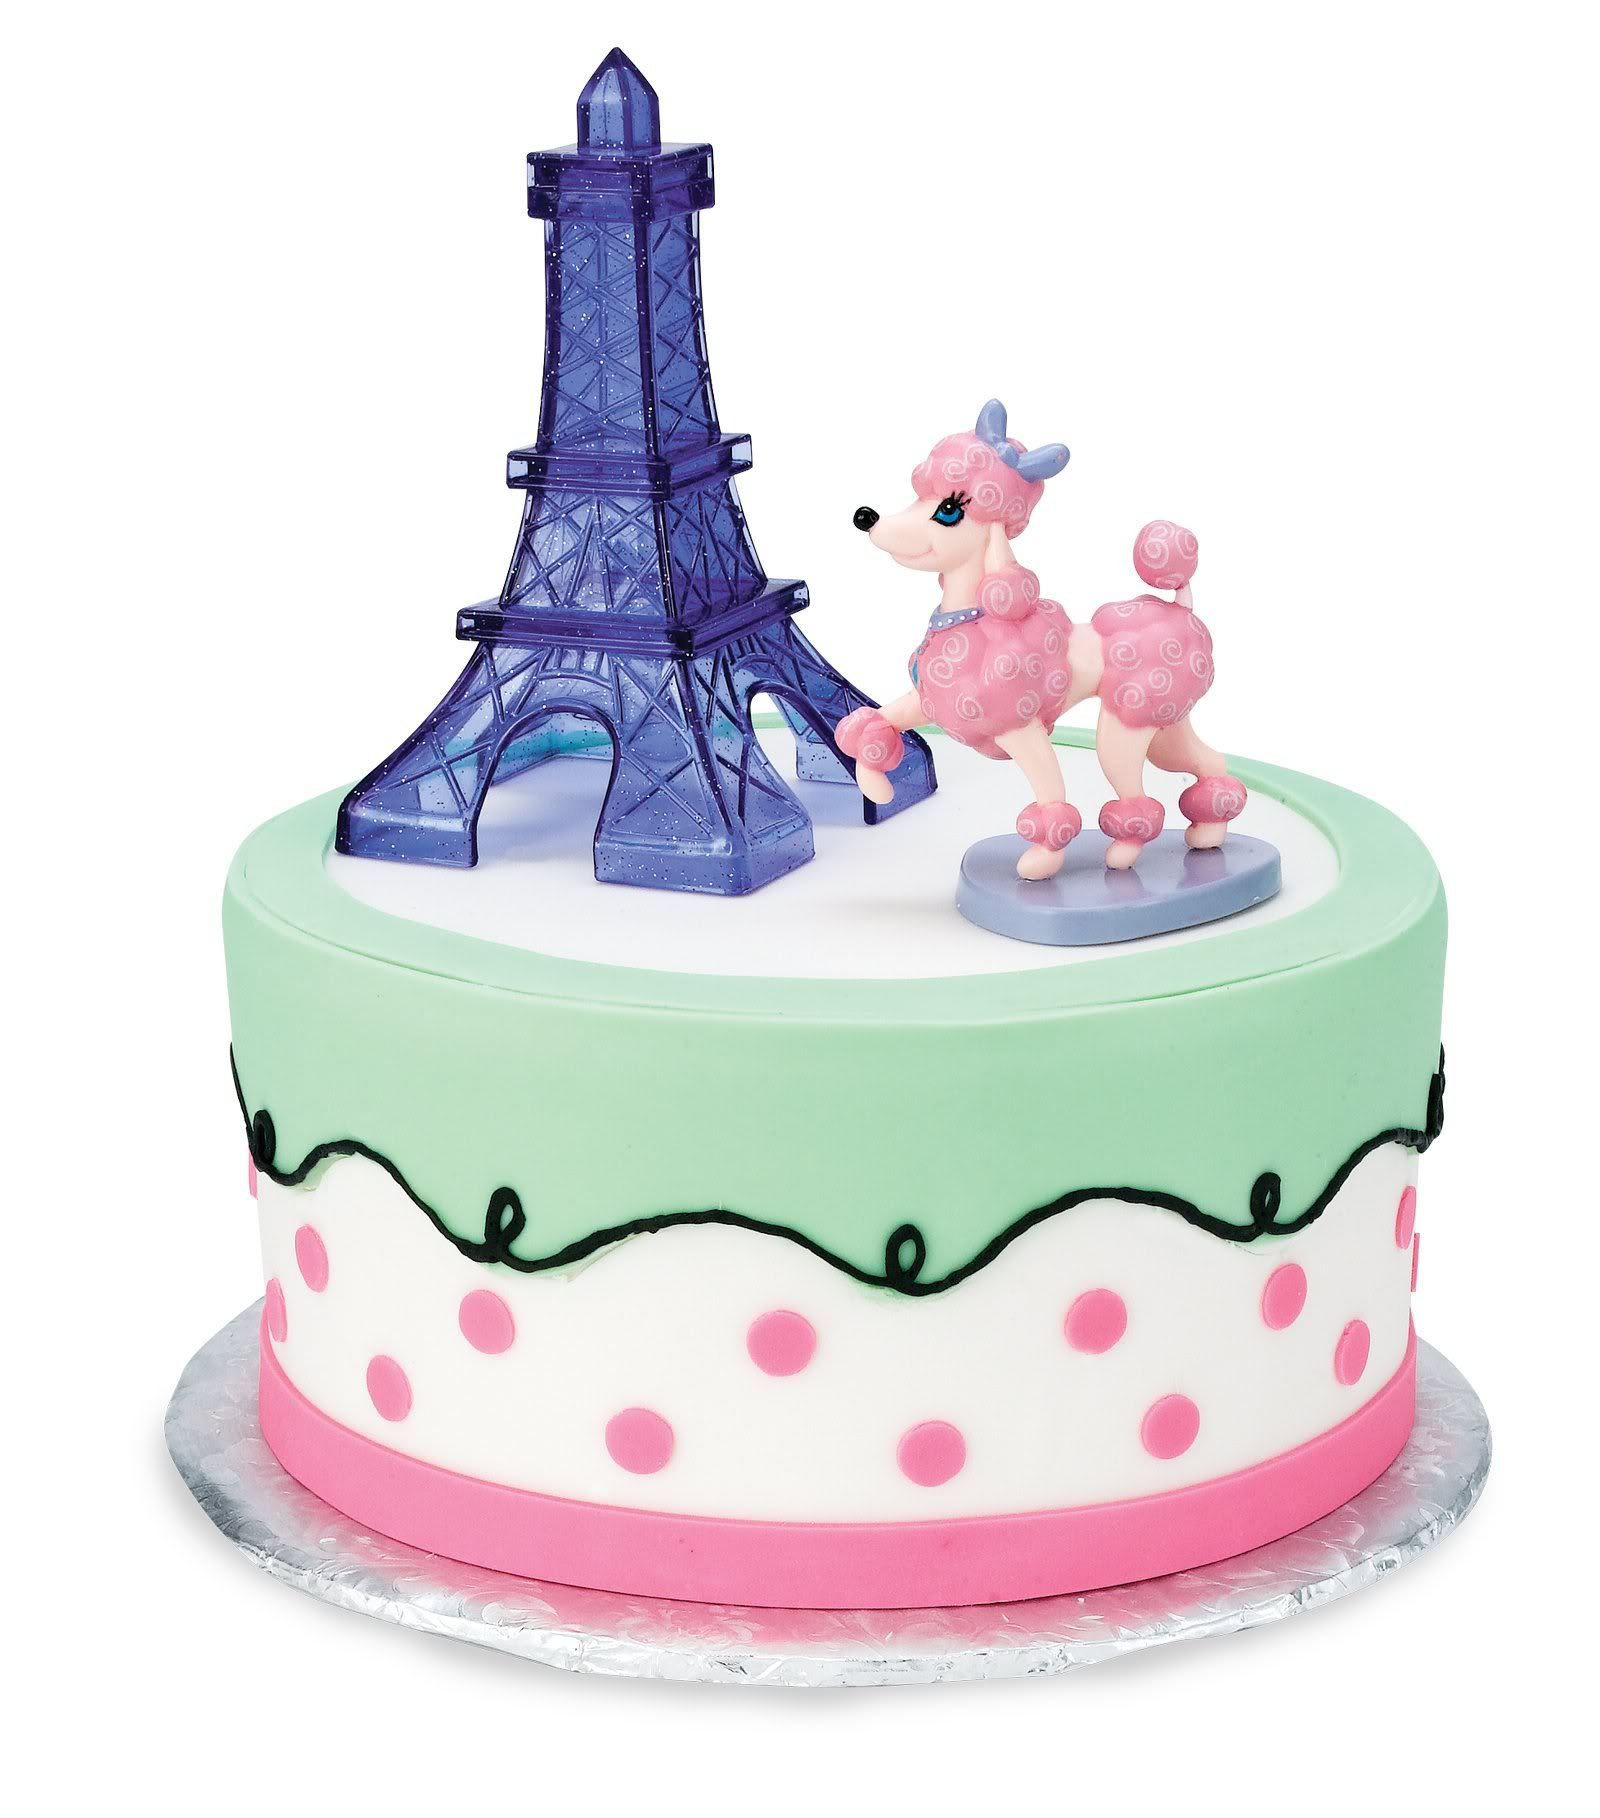 Cake Toppers Cake : PINK POODLE IN PARIS CAKE TOPPER This Party Started